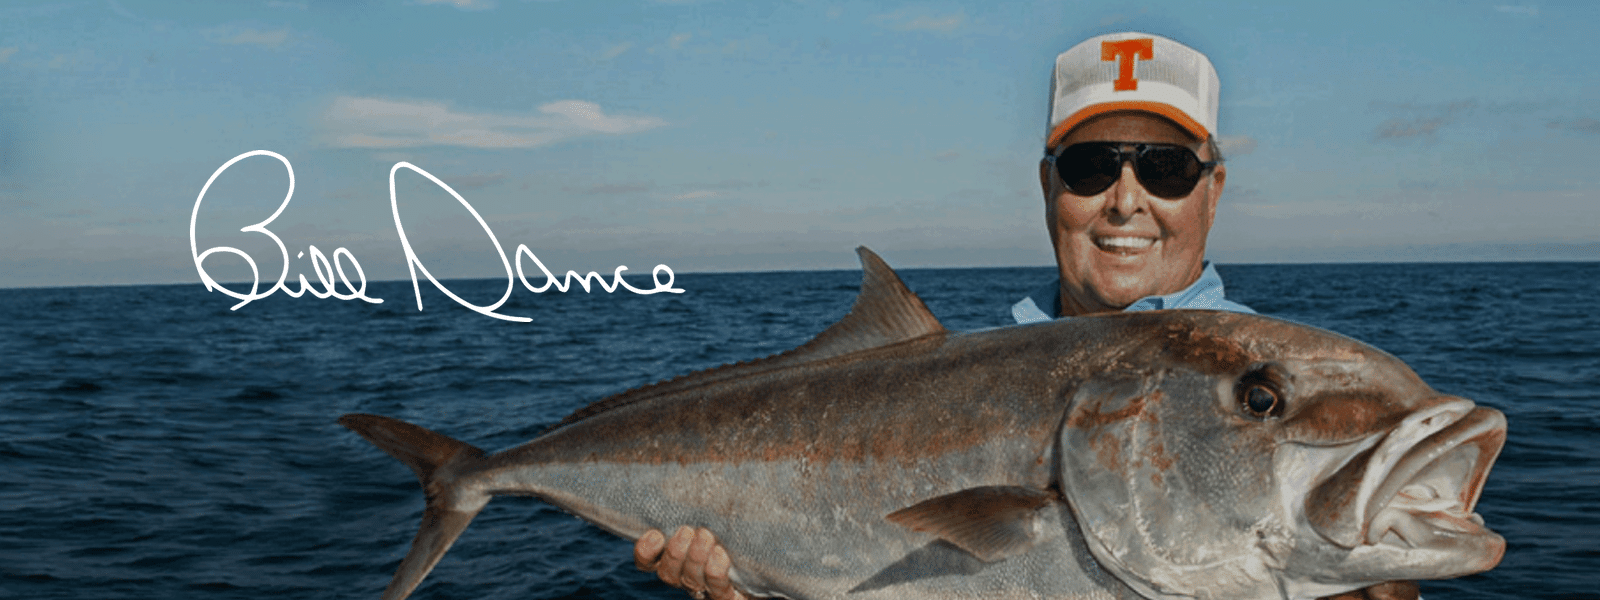 Bill dance fishing lures first fish online for Bill dance fishing